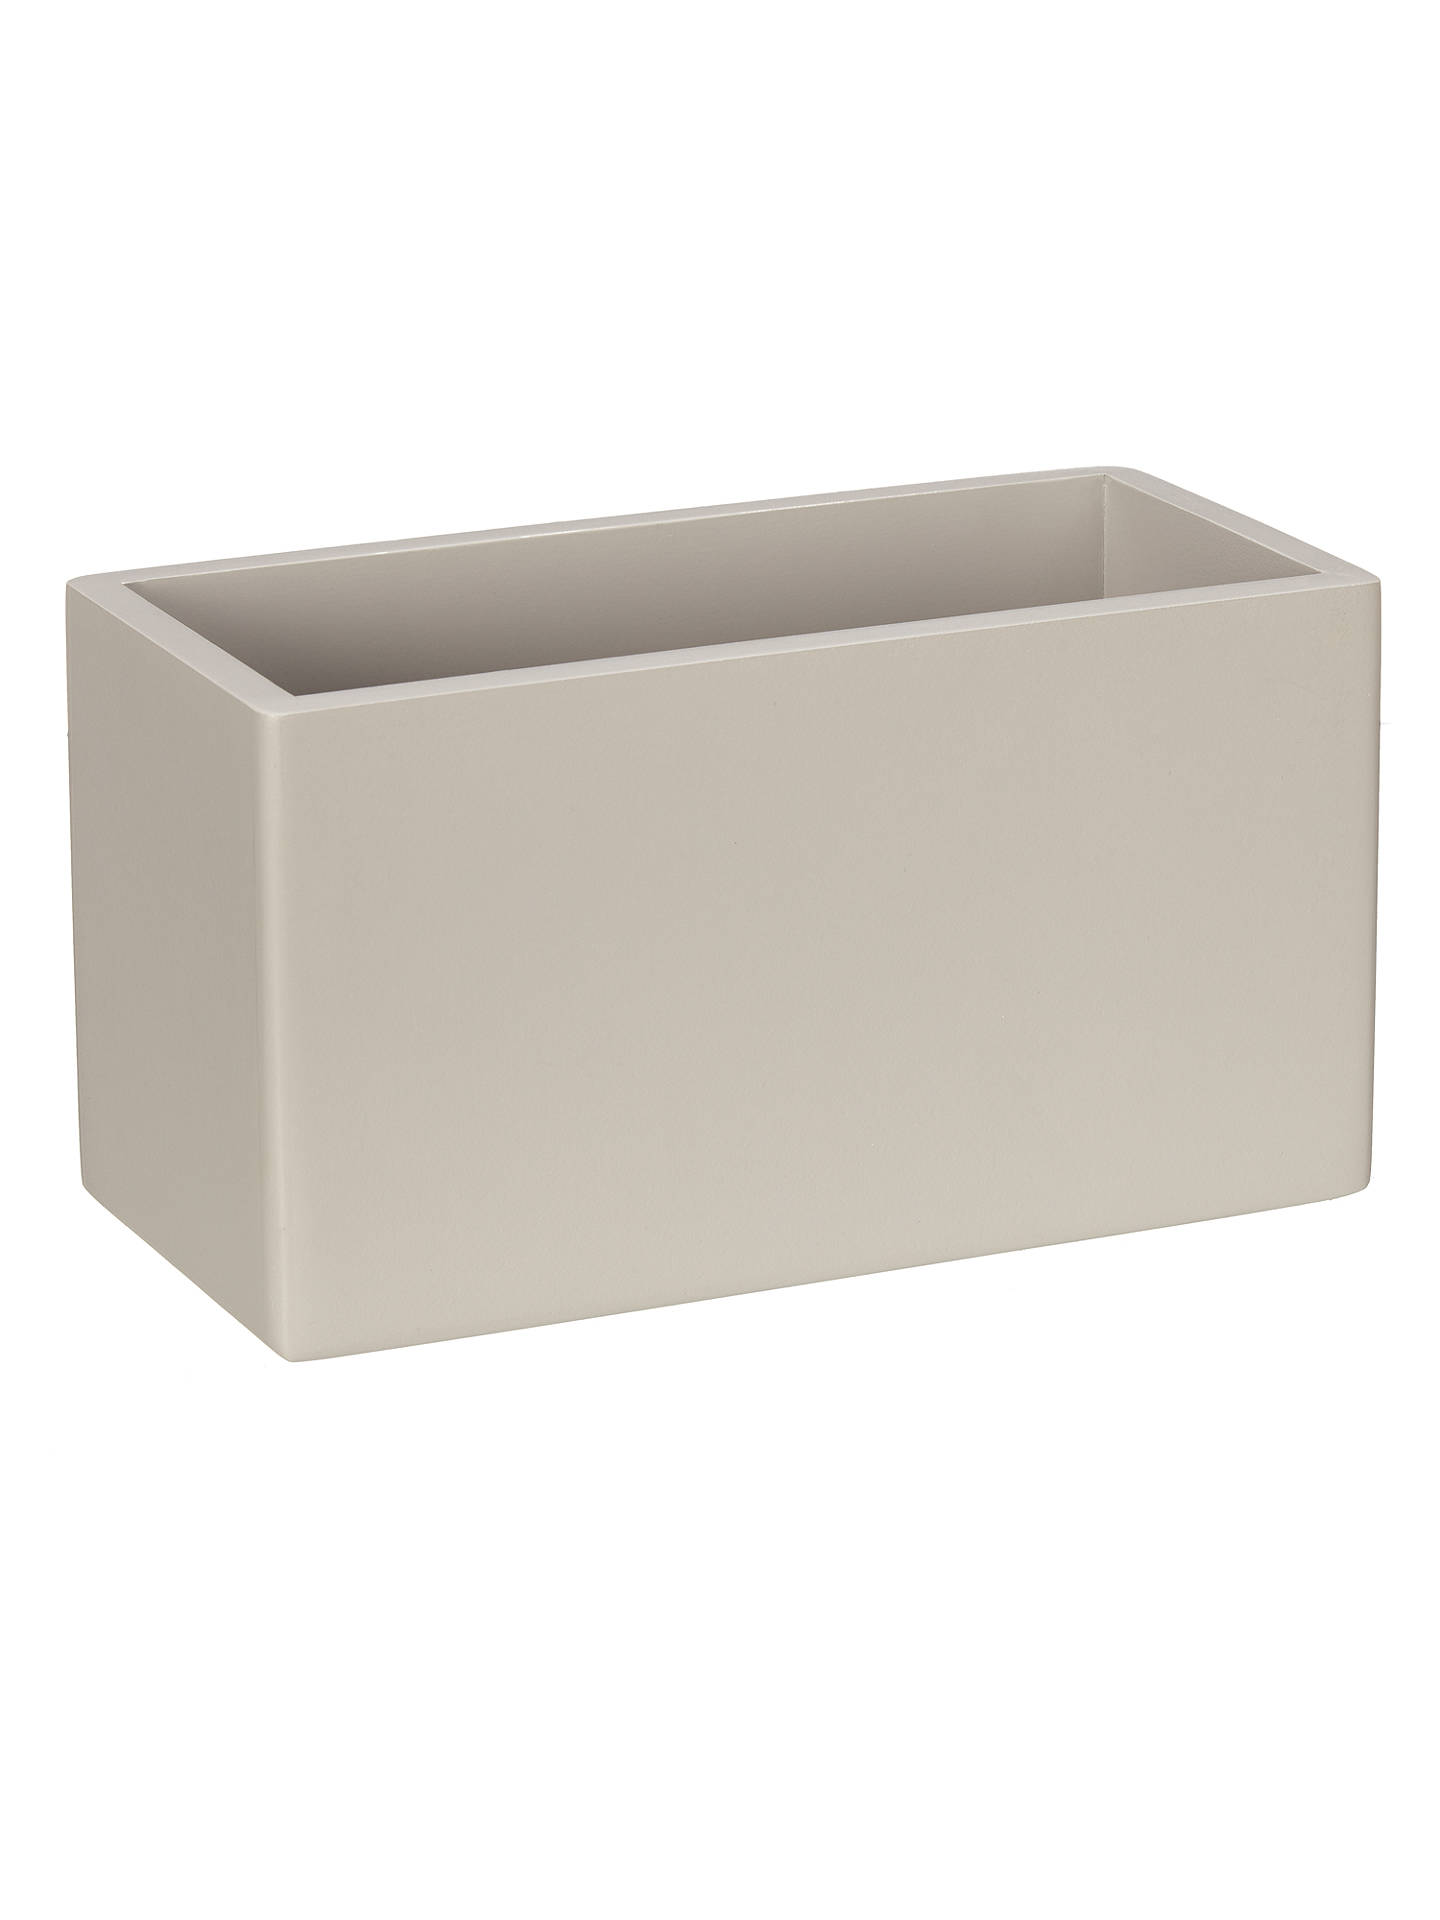 house by john lewis bathroom storage box small grey at. Black Bedroom Furniture Sets. Home Design Ideas